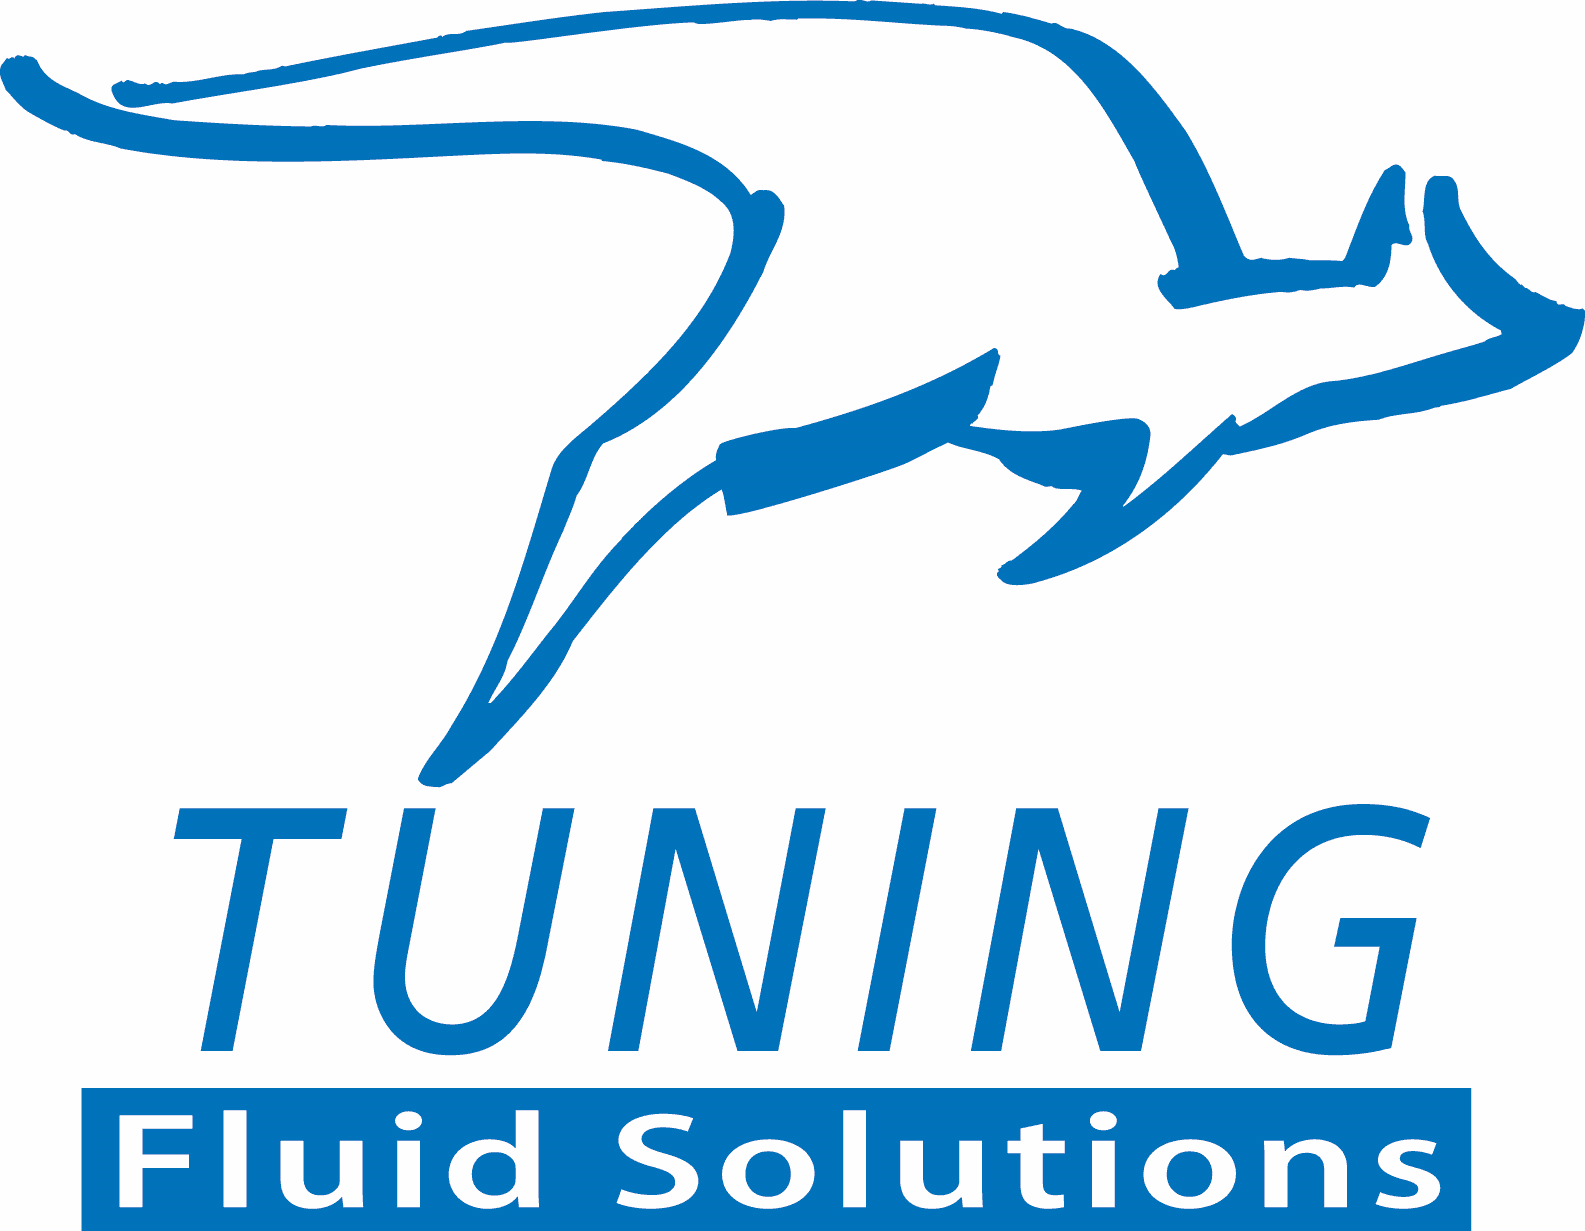 1631111385-tuning-fluid-solutions.png